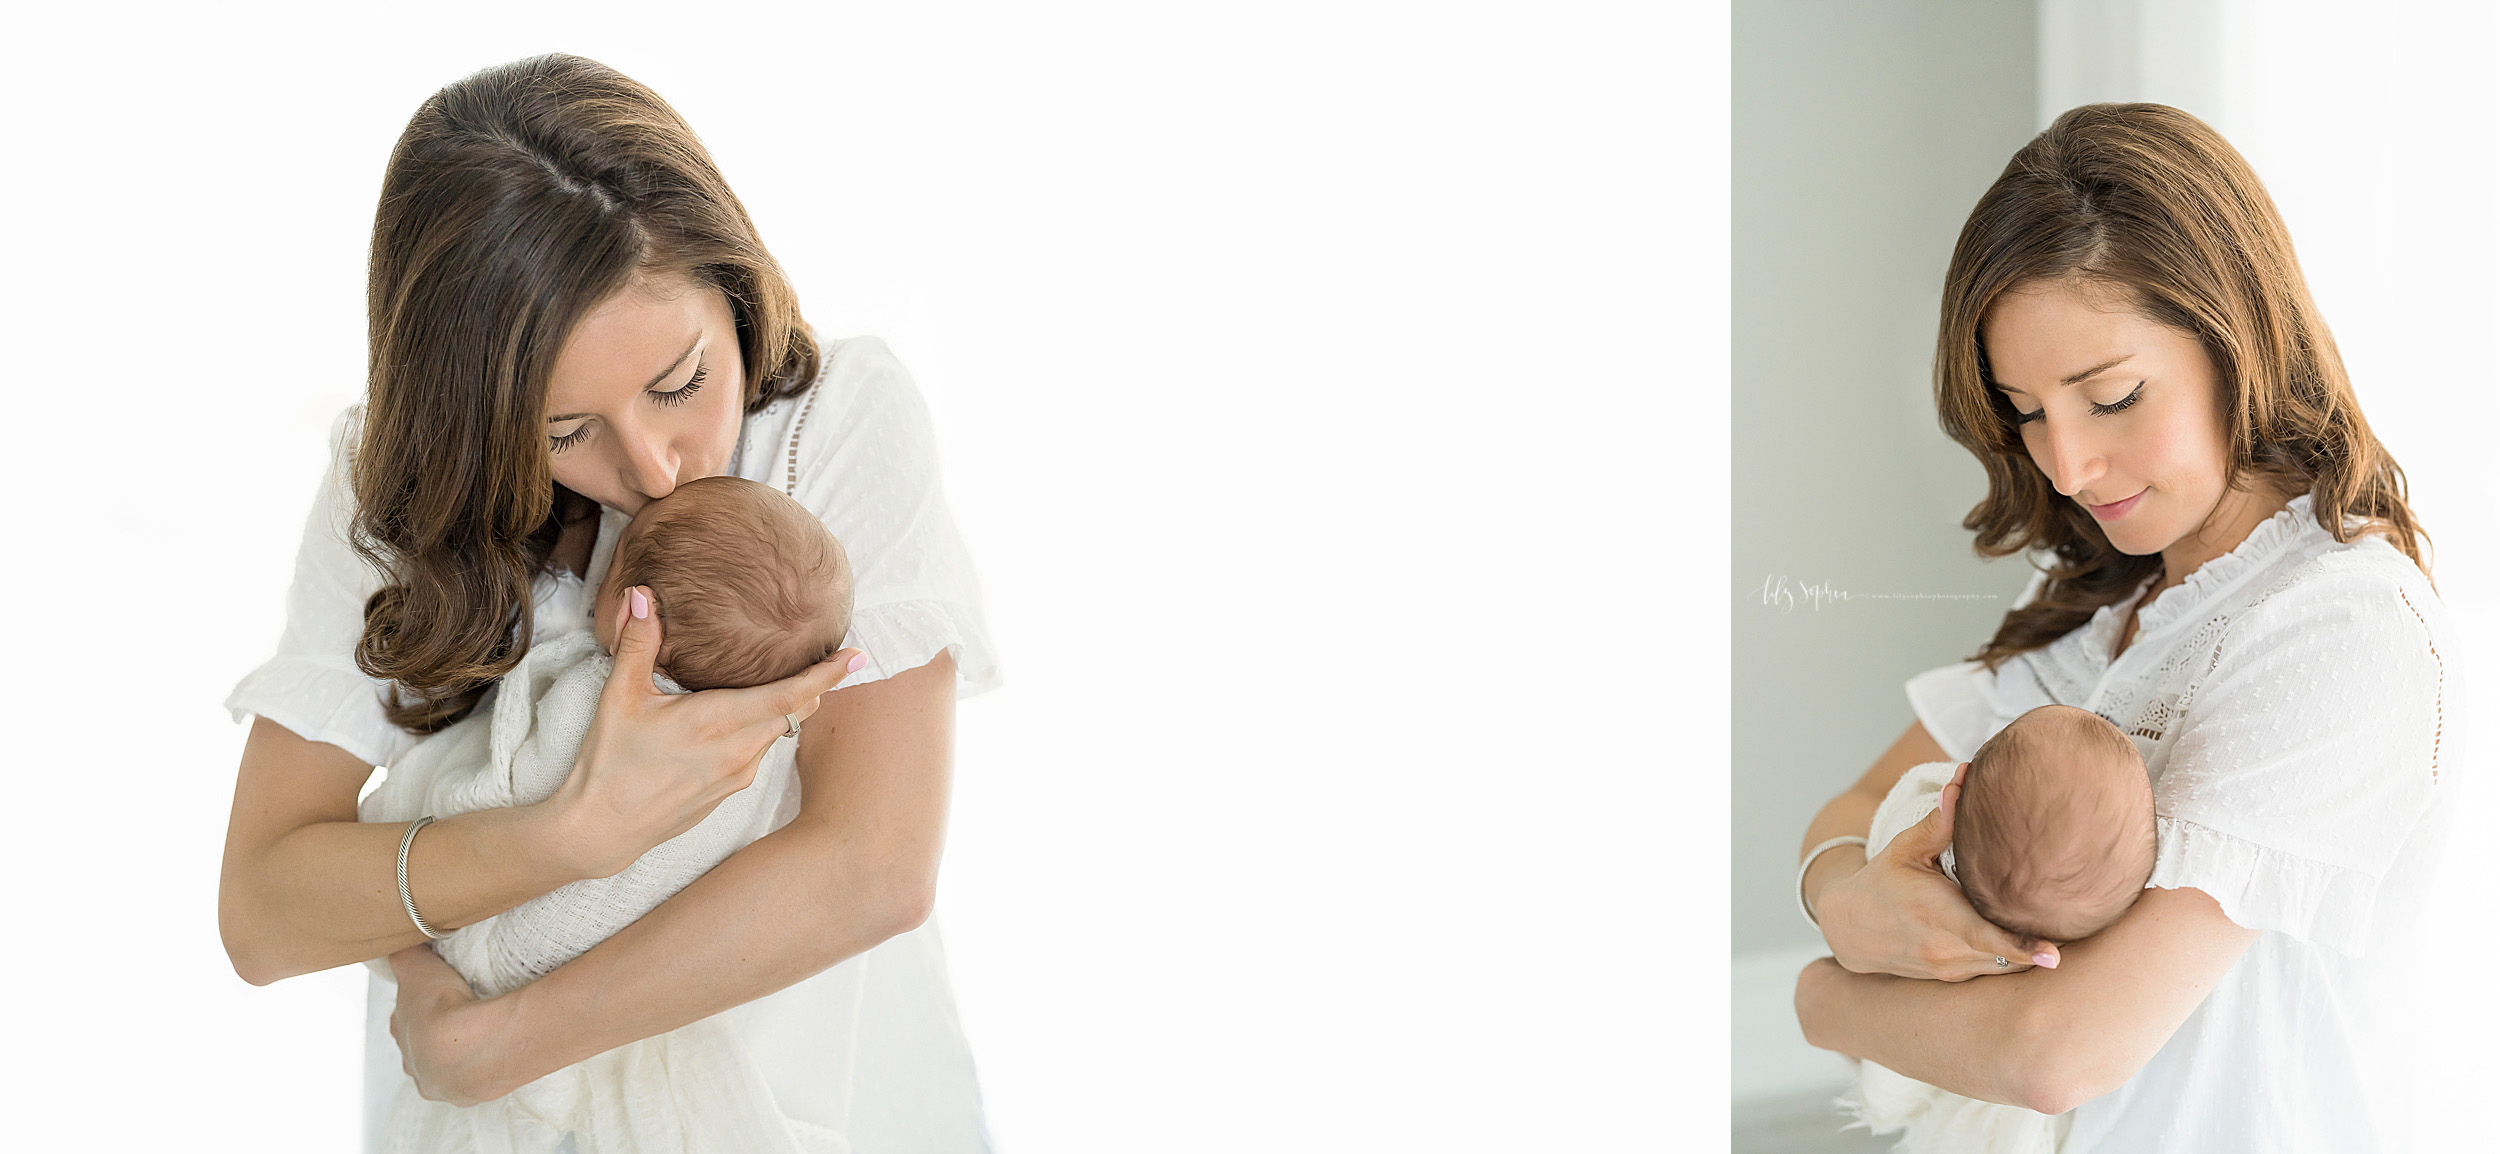 atlanta-roswell-brookhaven-sandy-springs-buckhead-virginia-highlands-west-end-decatur-lily-sophia-photography-studio-newborn-baby-boy-family-photos_1053.jpg